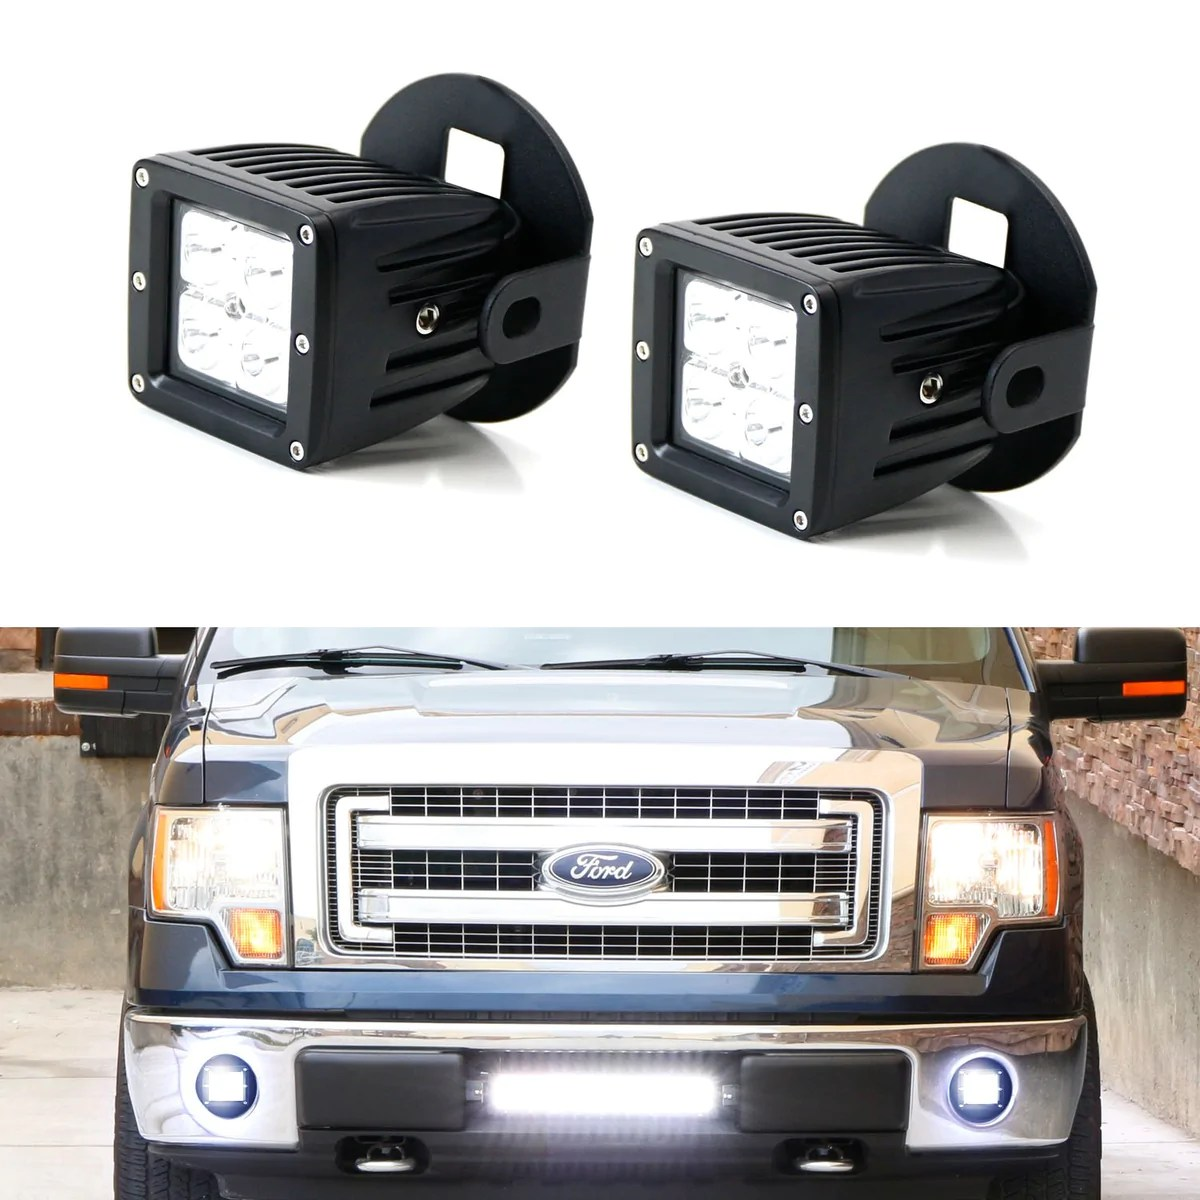 medium resolution of led pod light fog lamp kit for 2006 14 ford f150 2011 14 lincoln mark lt includes 2 20w high power cree led cubes foglight location mounting brackets